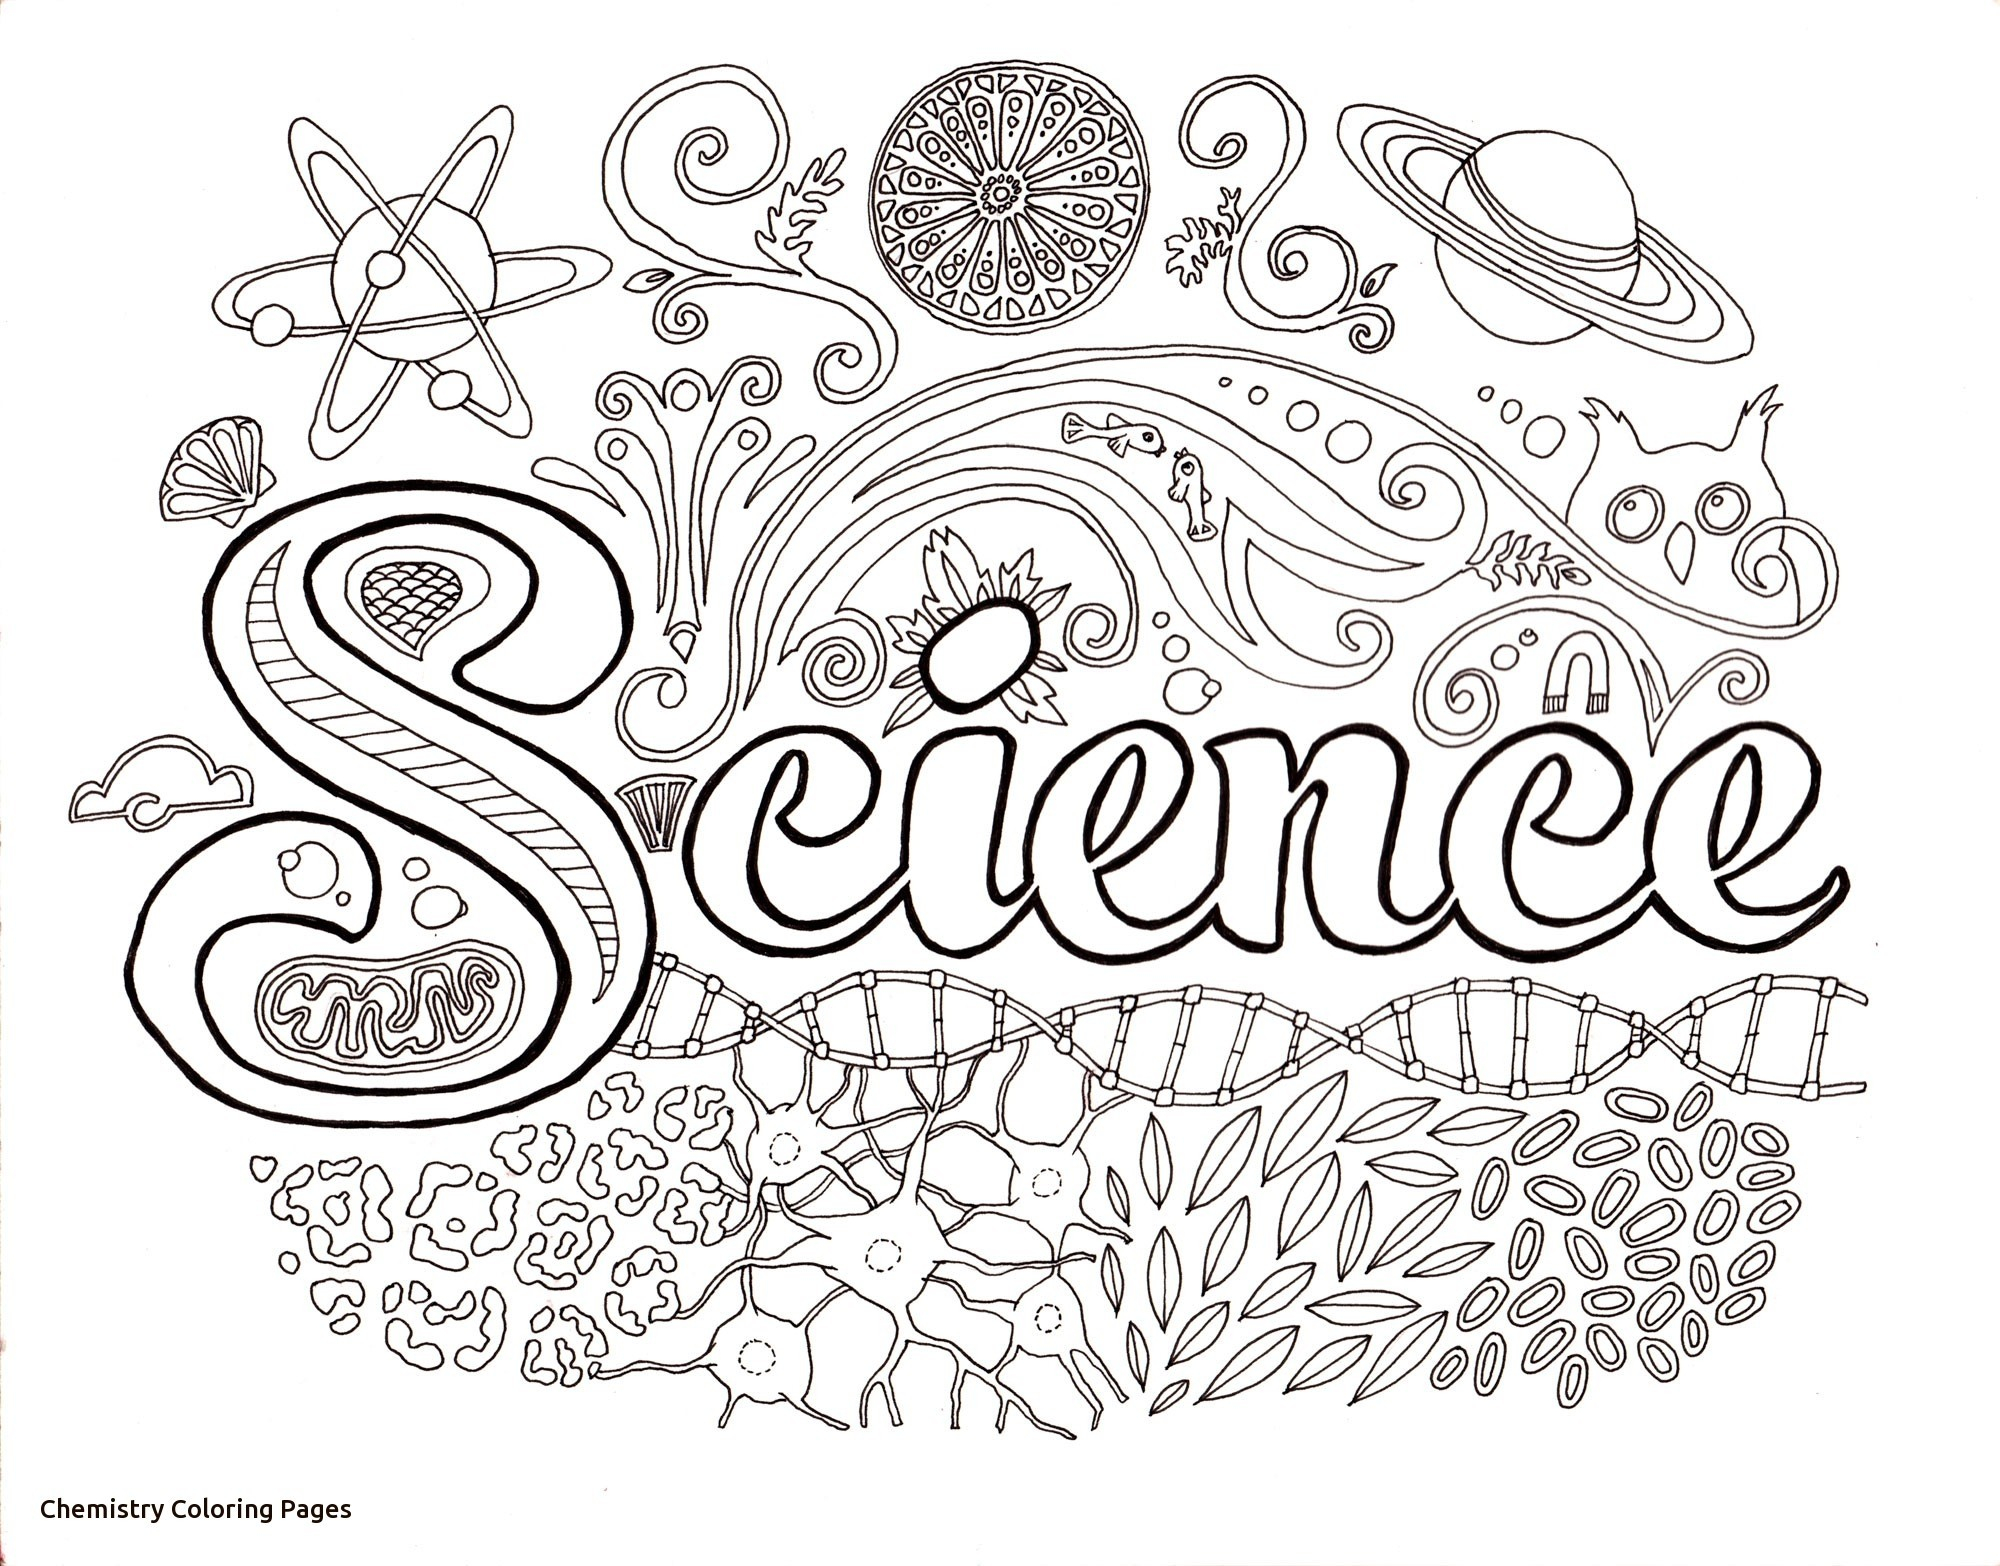 Mad Scientist Coloring Pages  Collection 3s - To print for your project